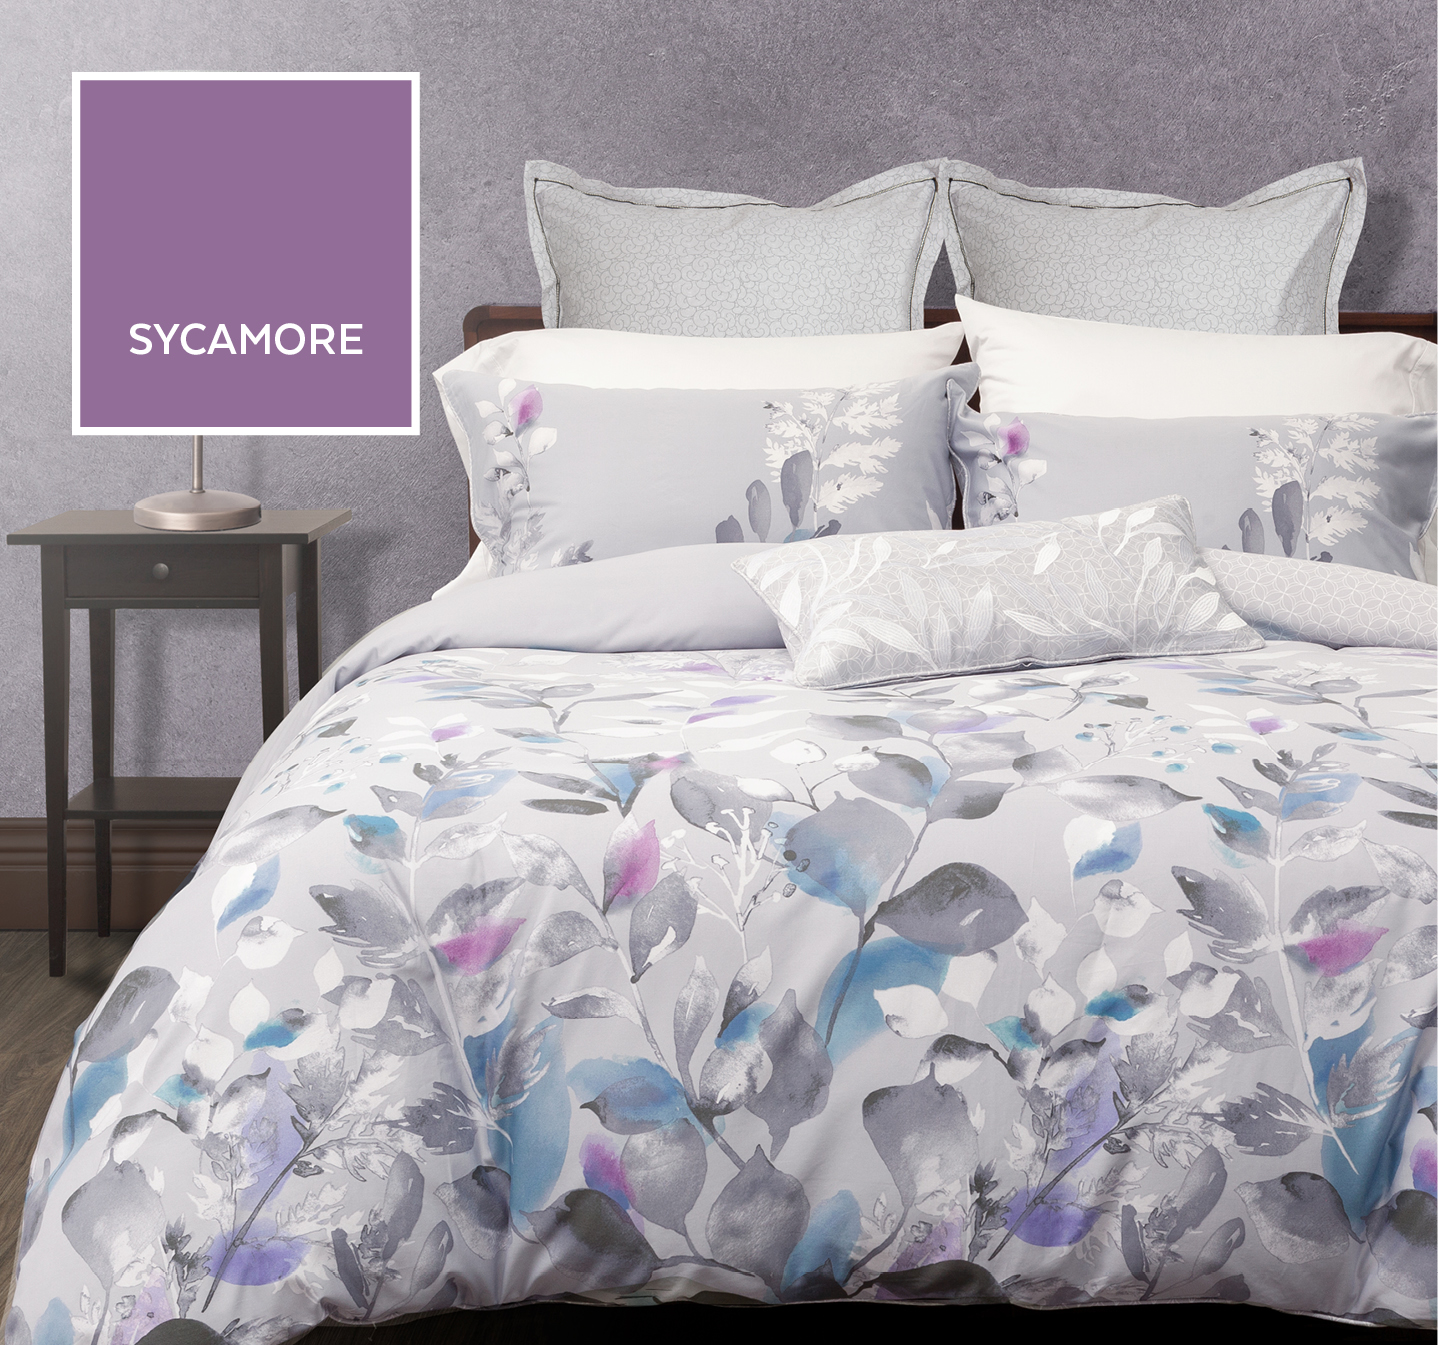 Sycamore Duvet Cover With Purple Accents